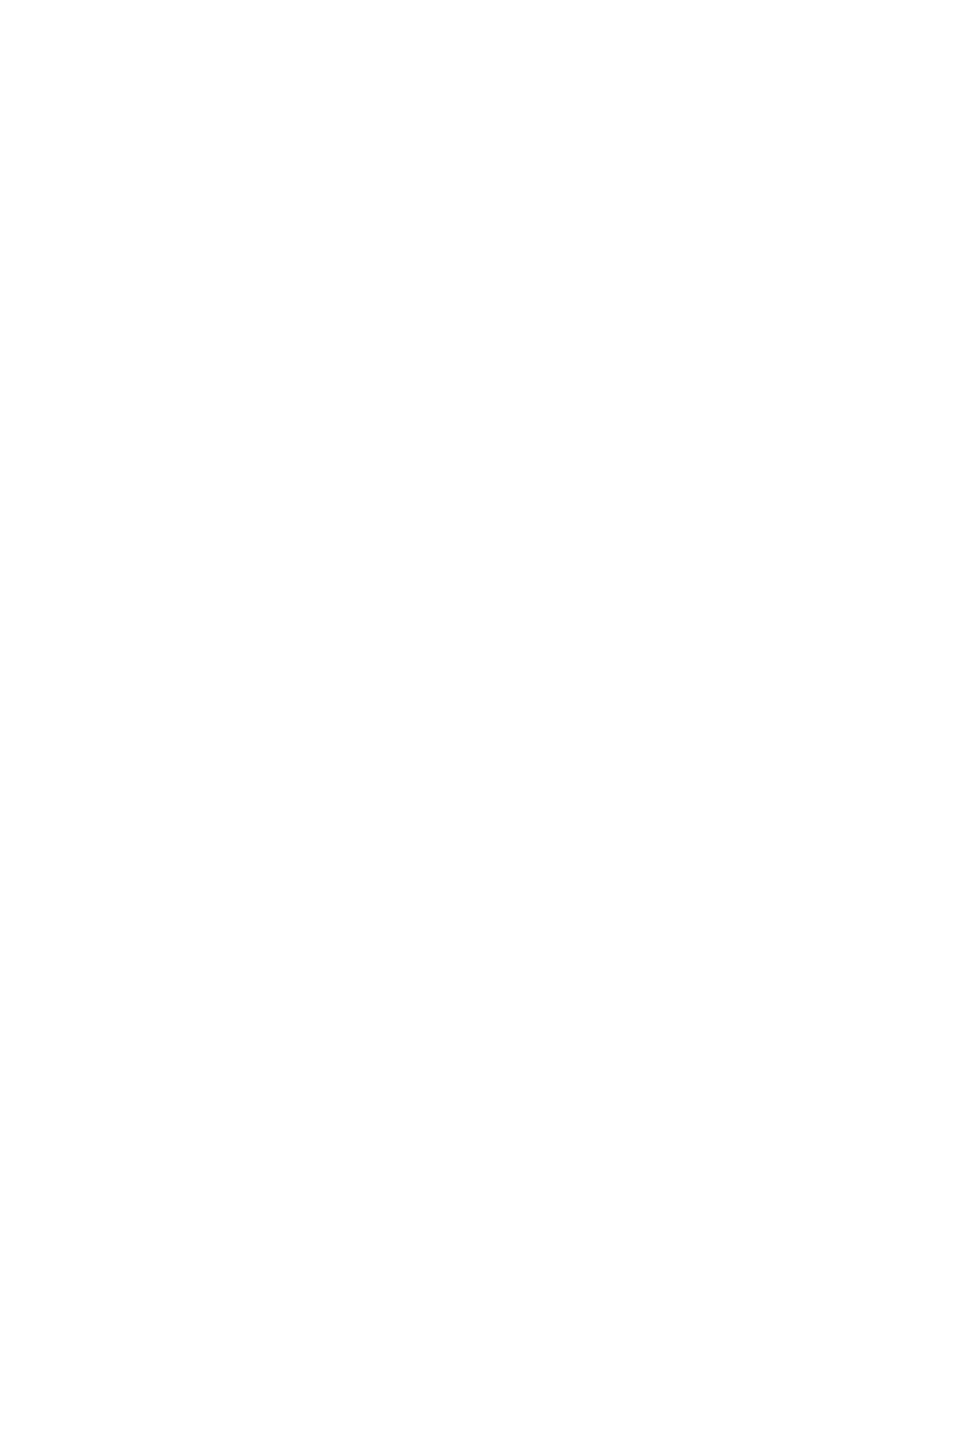 Q42 | A happy place for nerds